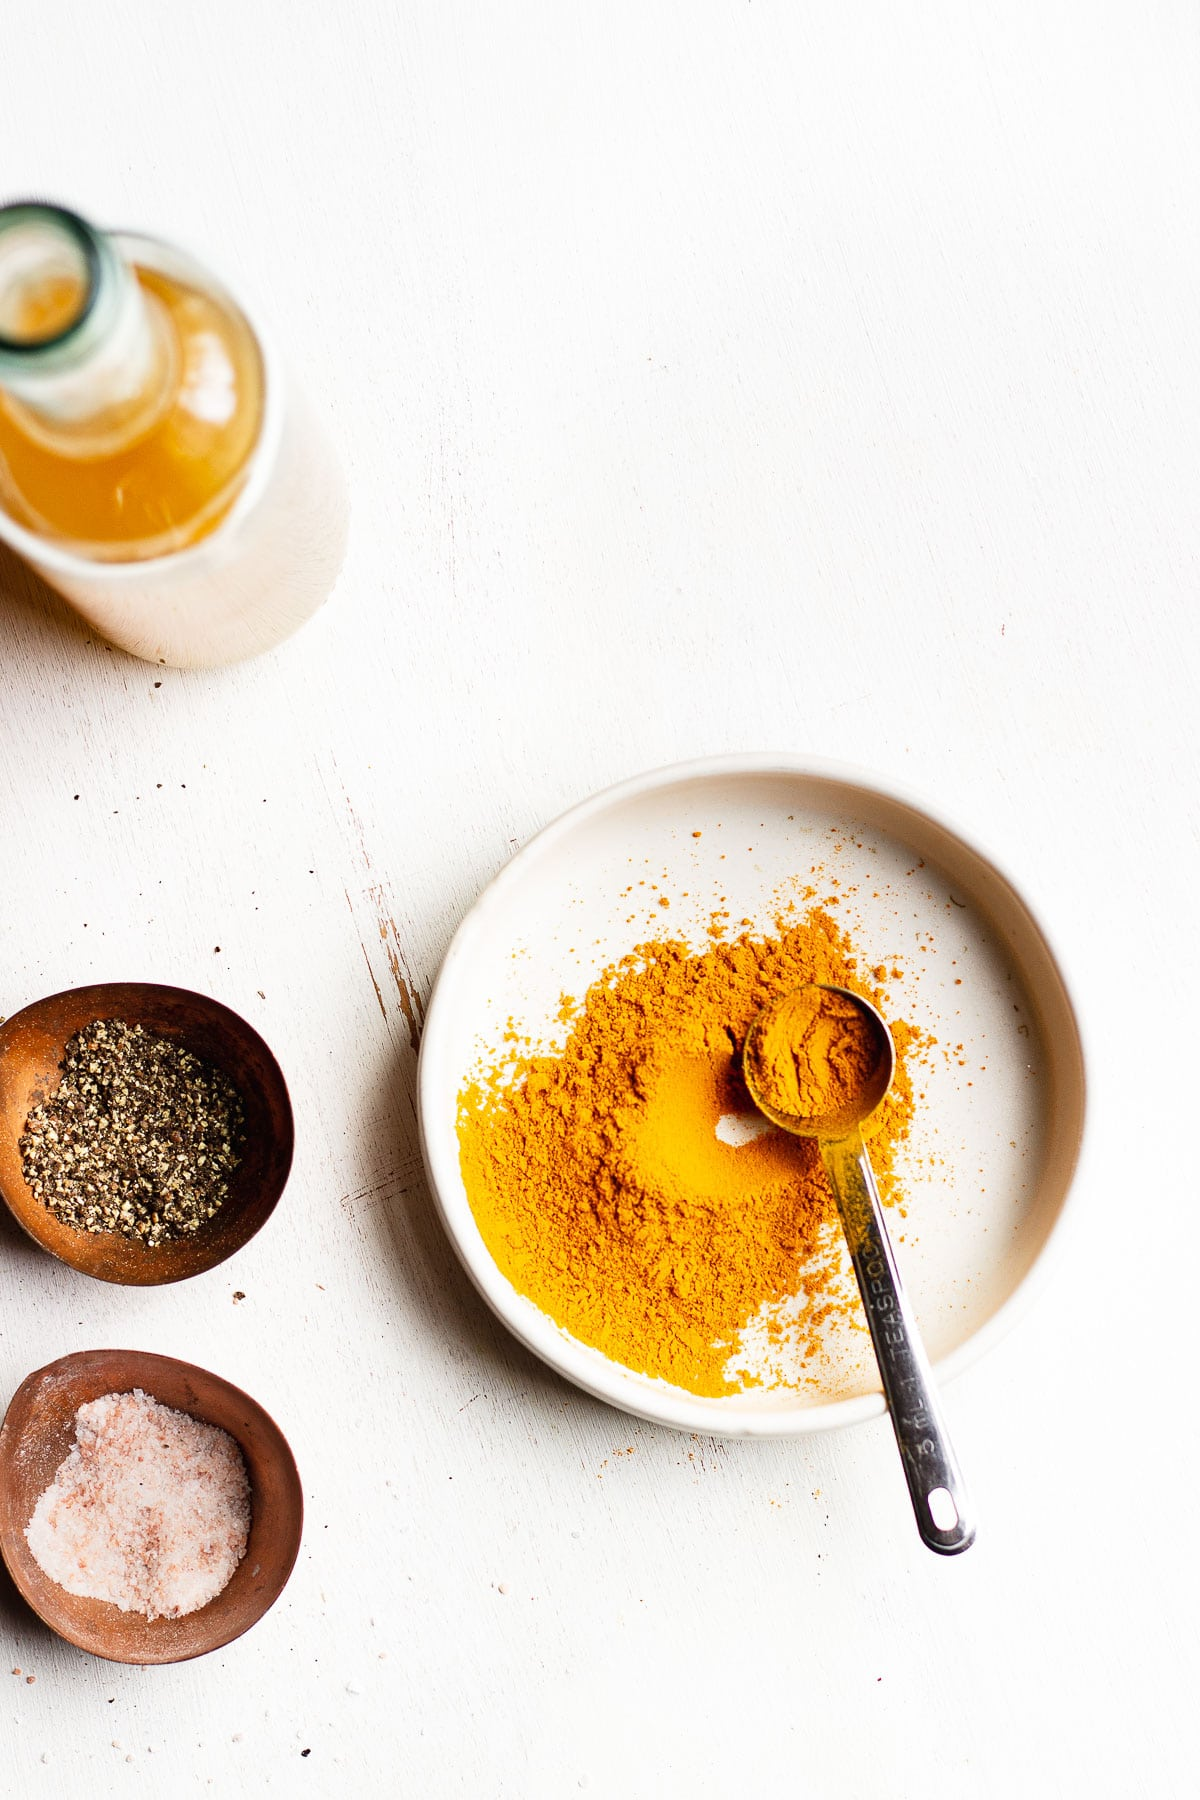 turmeric and black pepper spices